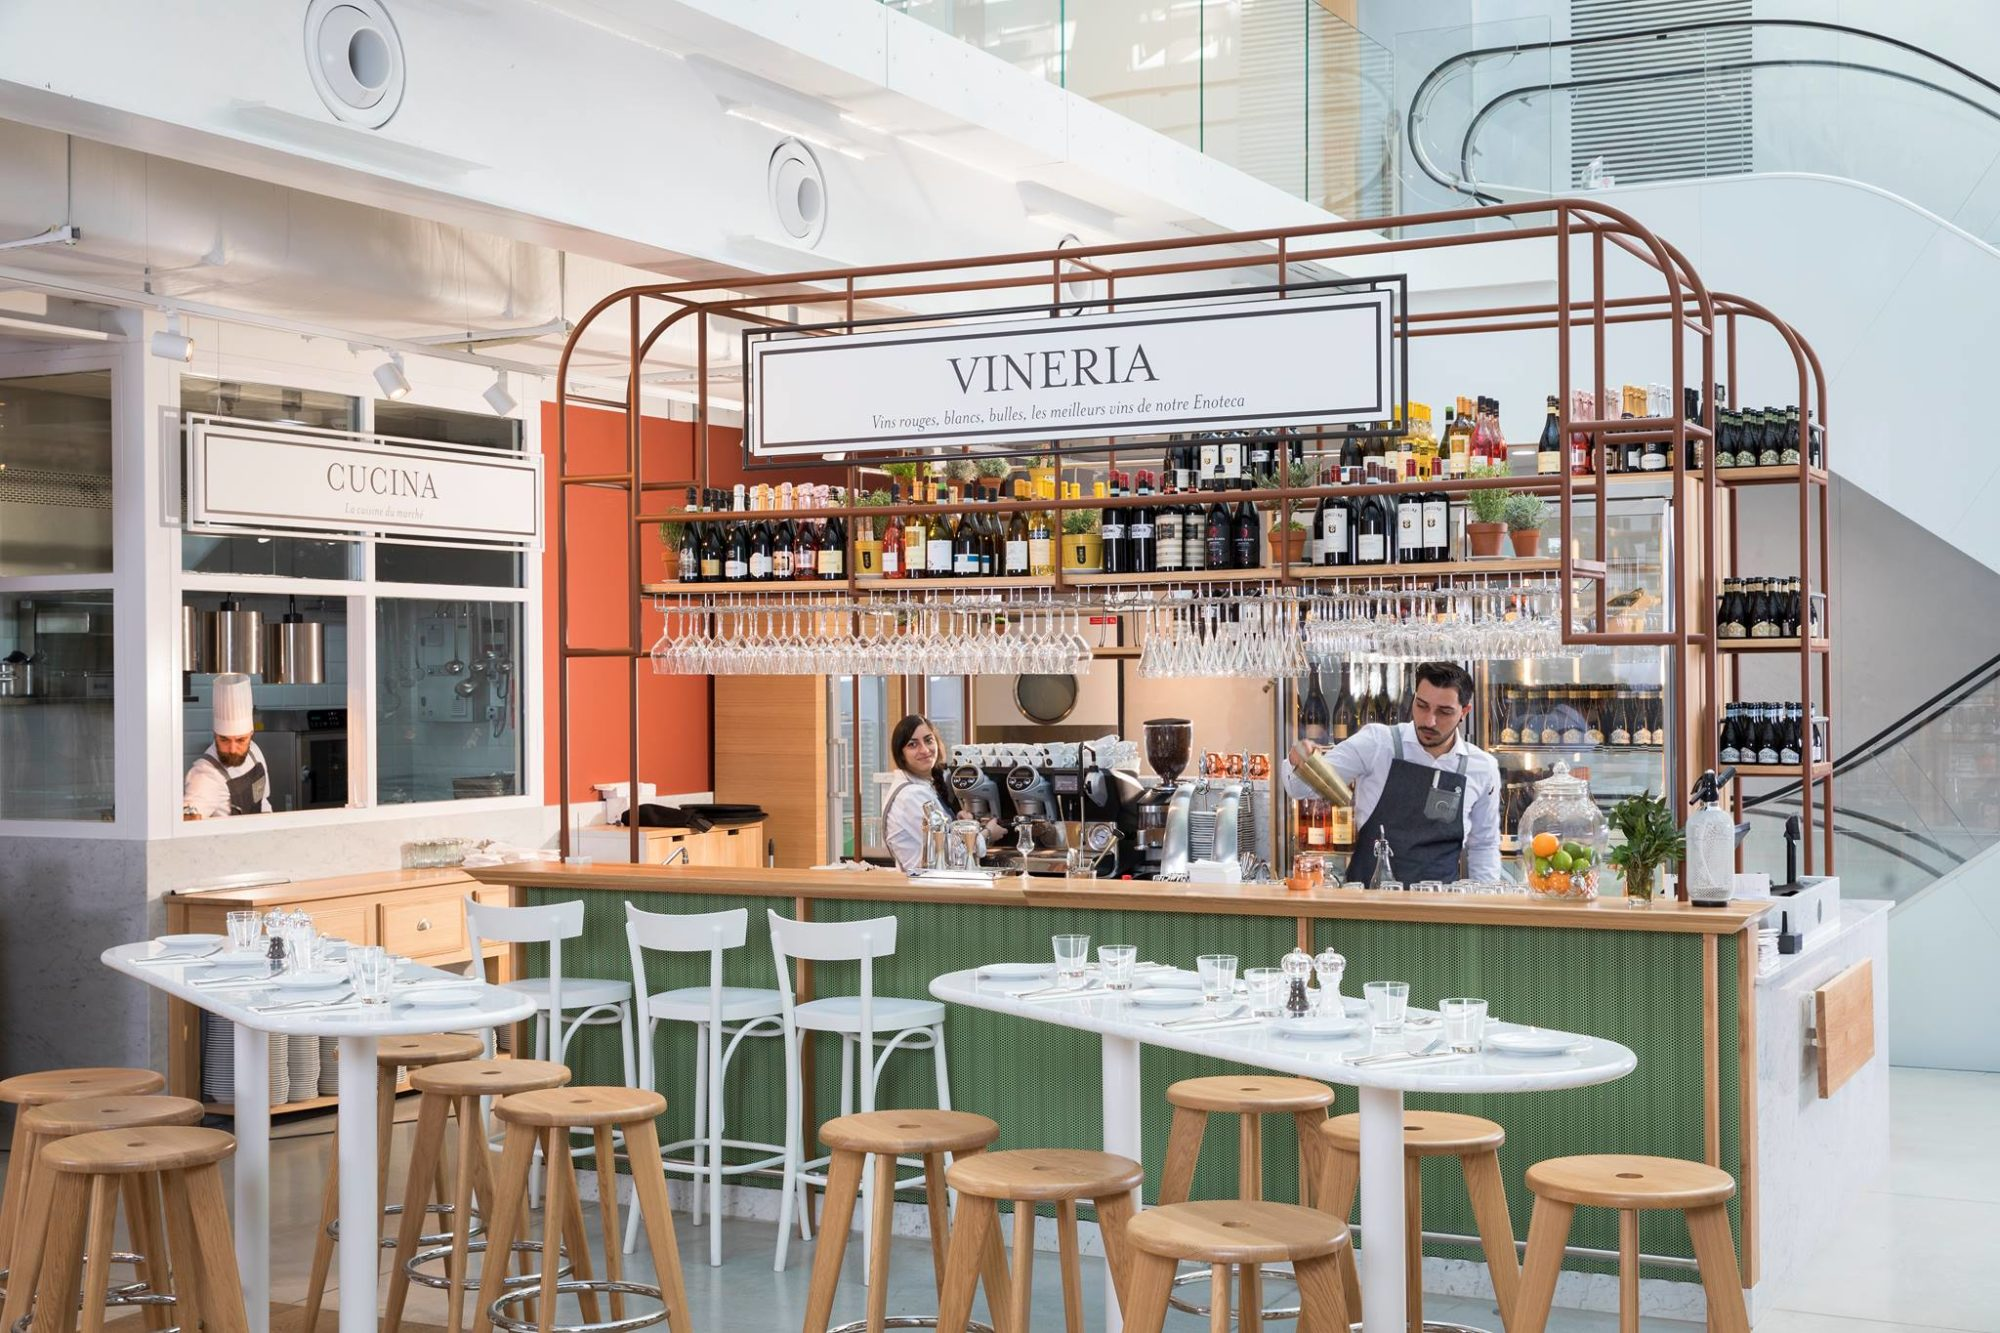 The bar and antipasti restaurant at Eataly in Paris comes with bright and light interiors.